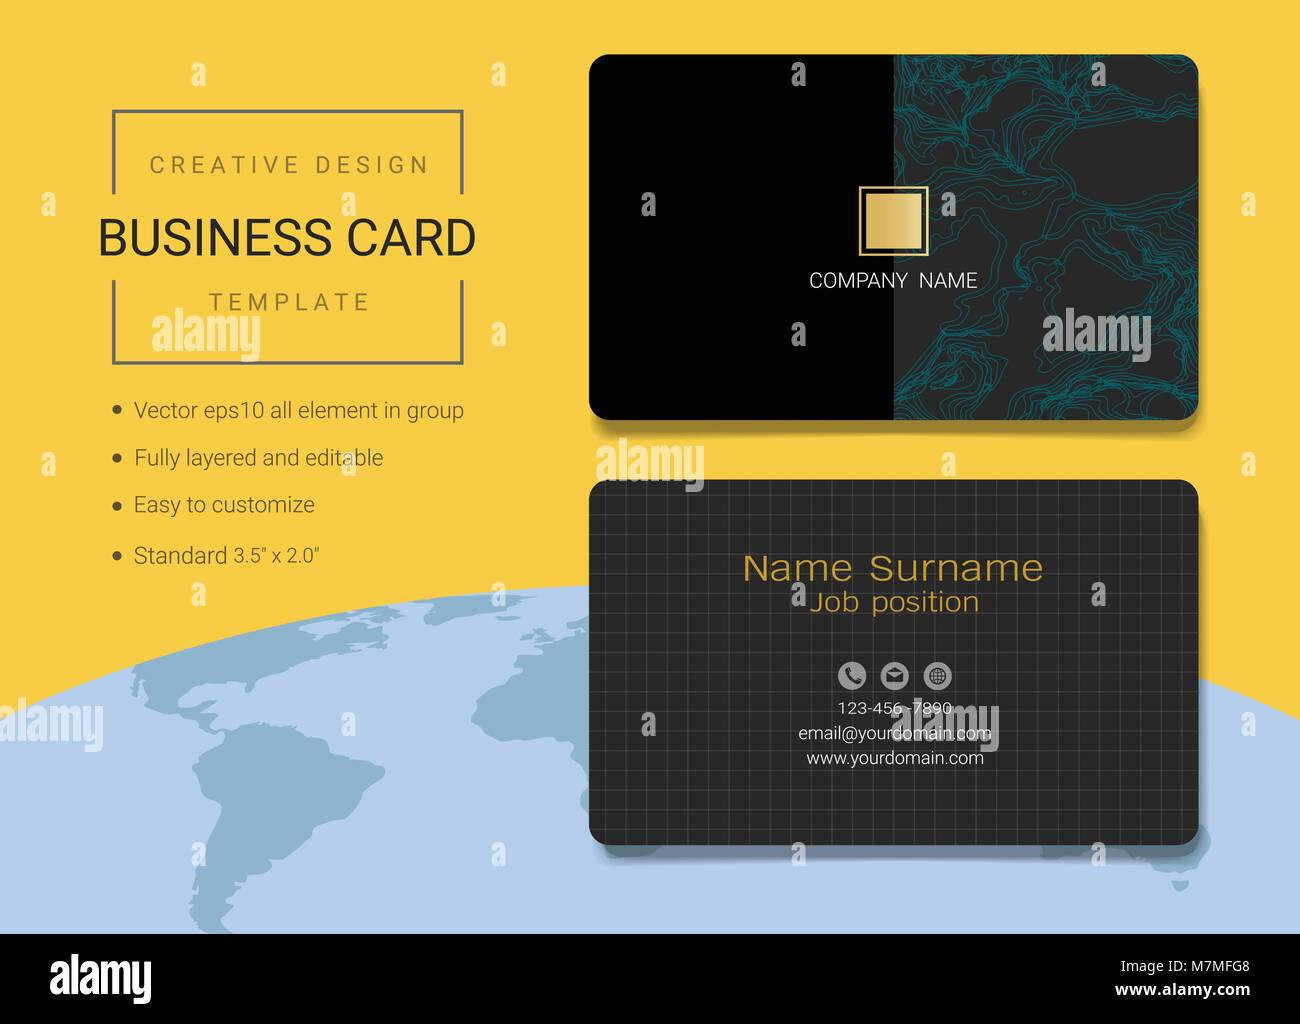 Creative business card or name card template simple style also creative business card or name card template simple style also modern and elegant with abstract geometric lines background accmission